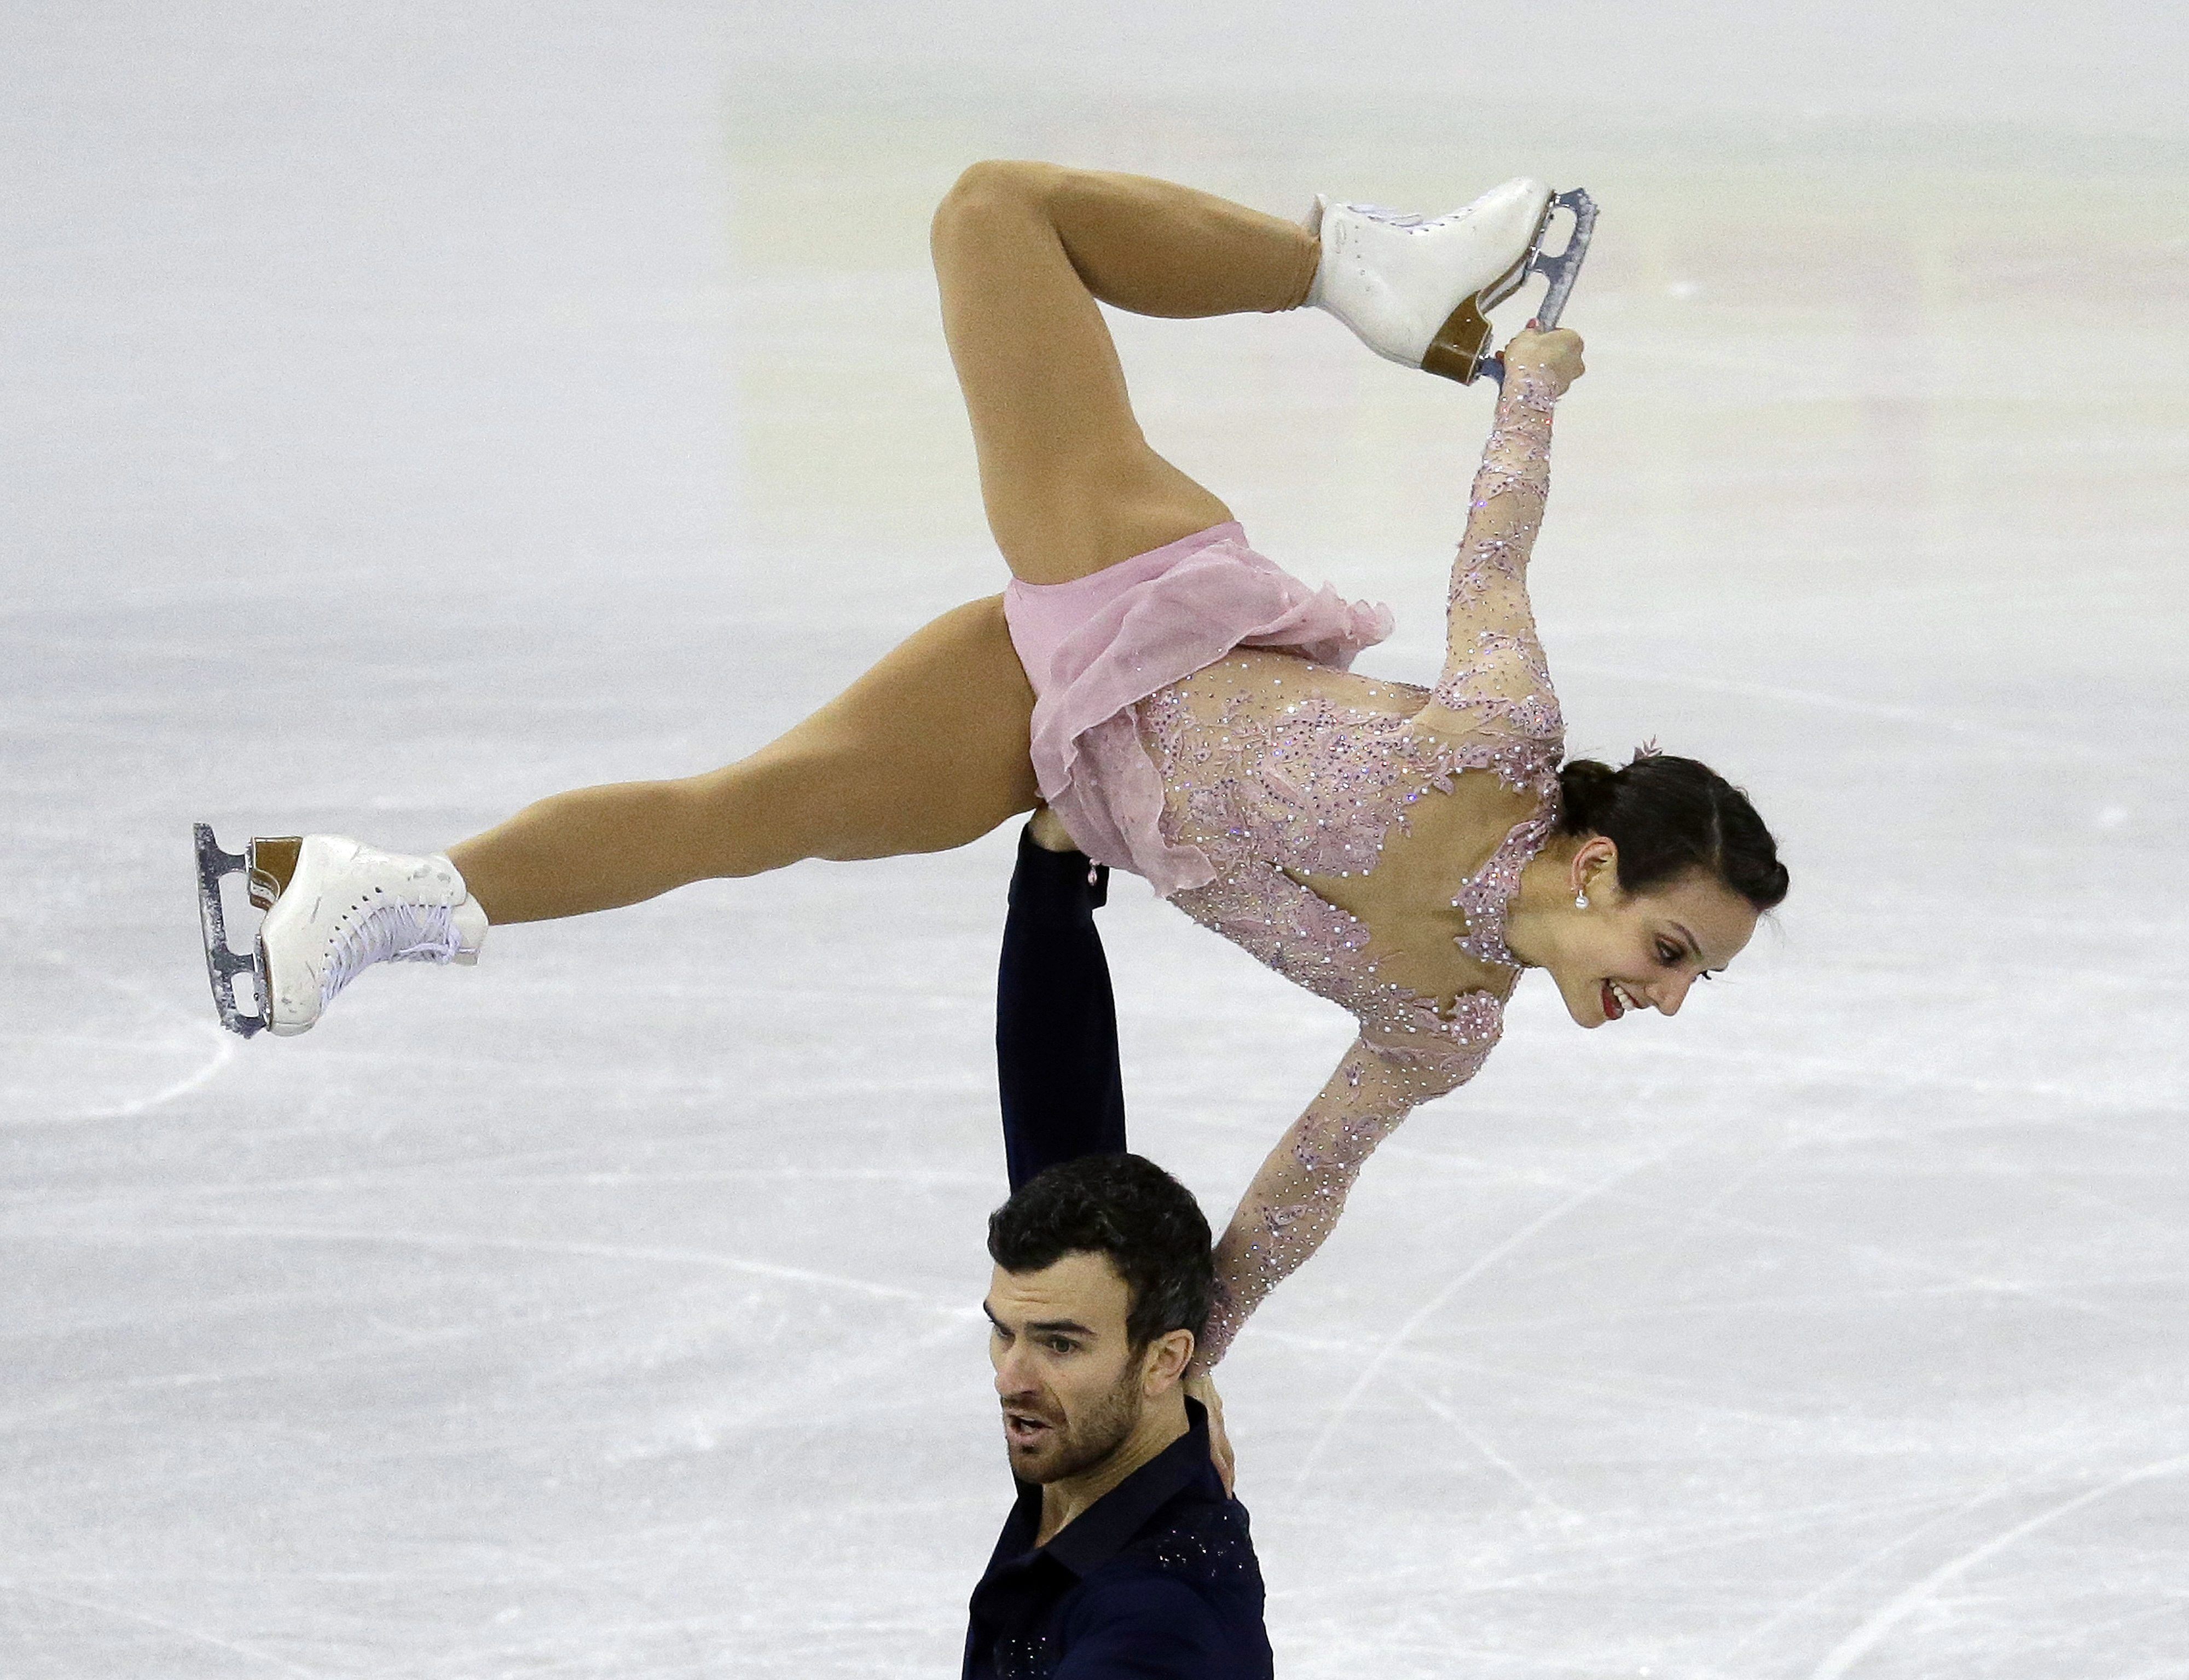 Silver medalists Meagan Duhamel and Eric Radford of Canada perform in the Pairs Free Skating at the ISU Four Continents Figure Skating Championships in Gangneung, South Korea, Saturday, Feb. 18, 2017. (AP Photo/Ahn Young-joon)